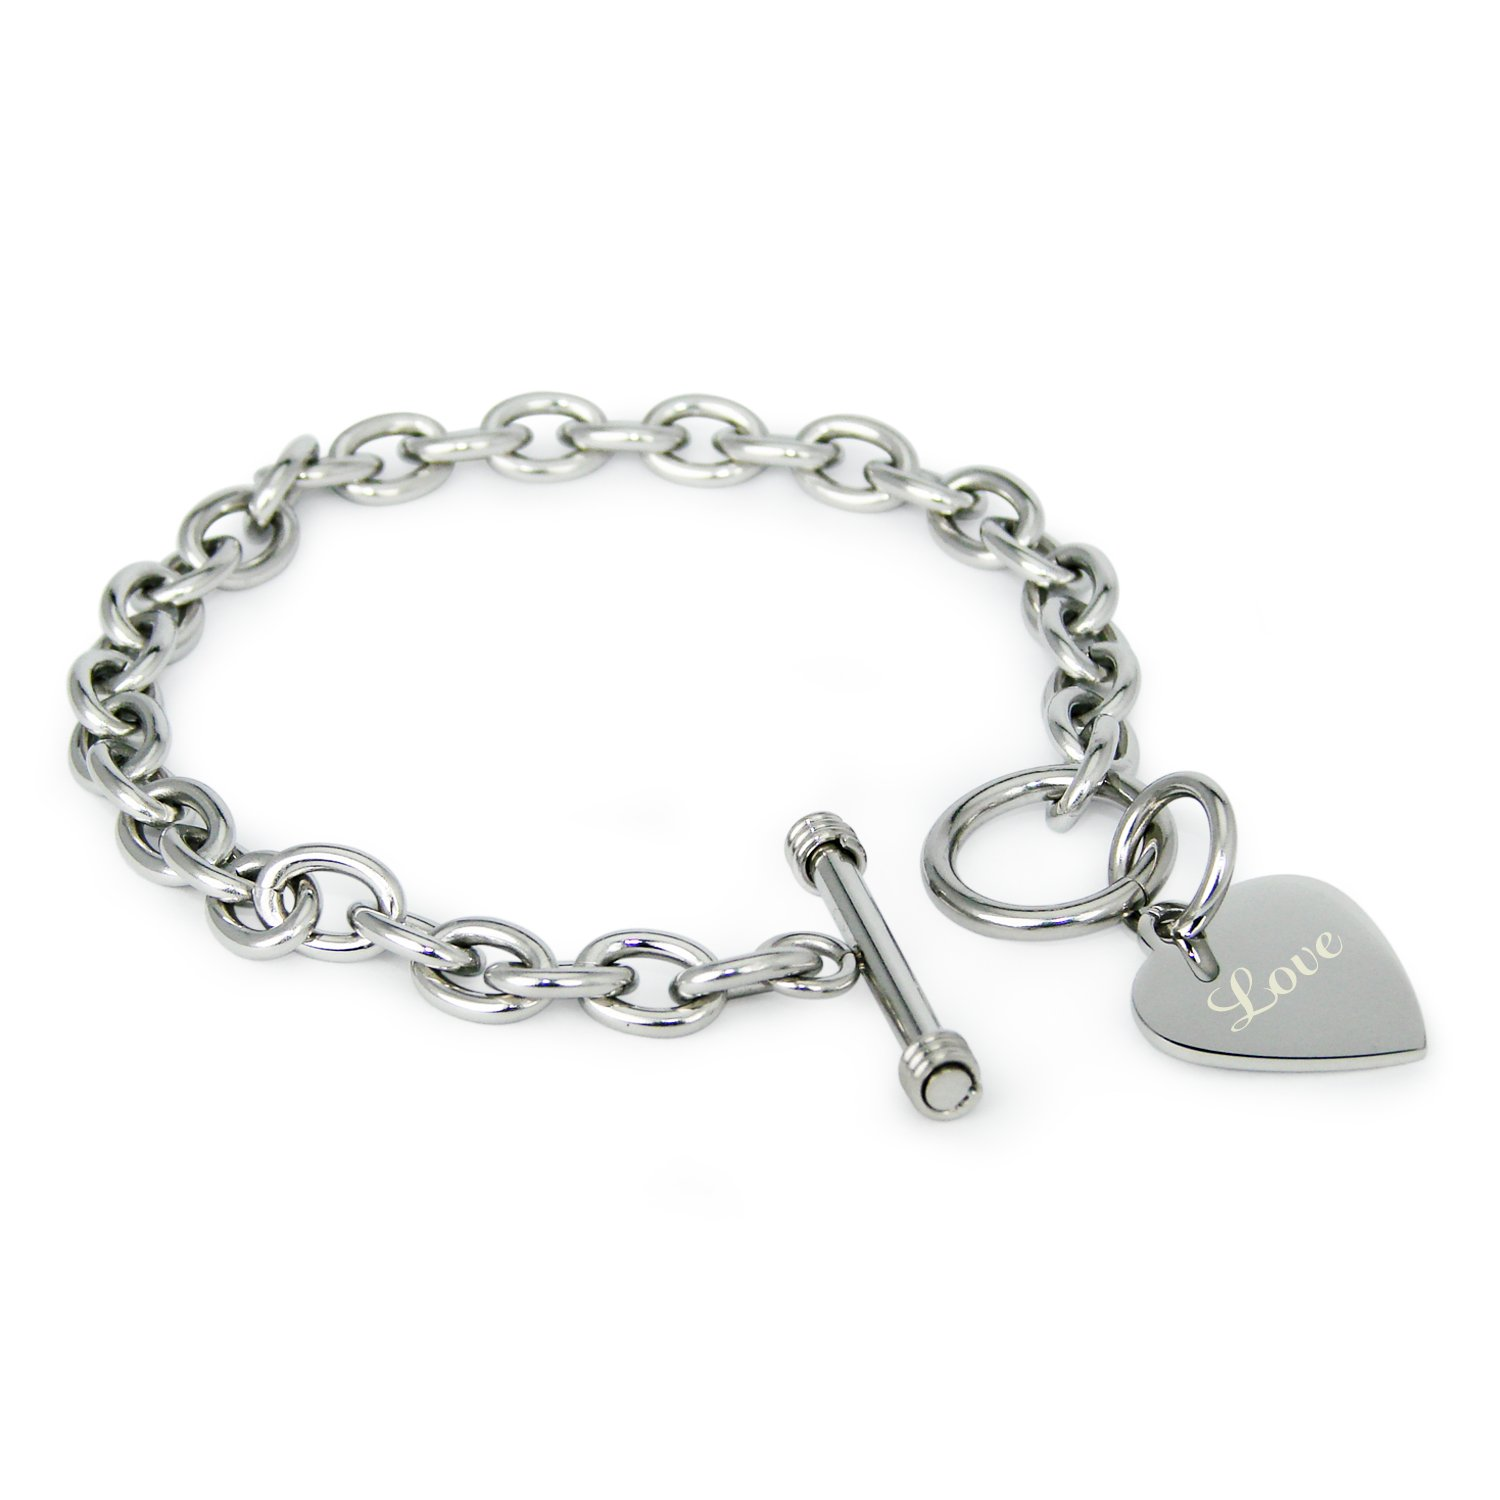 Tioneer Stainless Steel Engraved Love Heart Charm Bracelet and Necklace